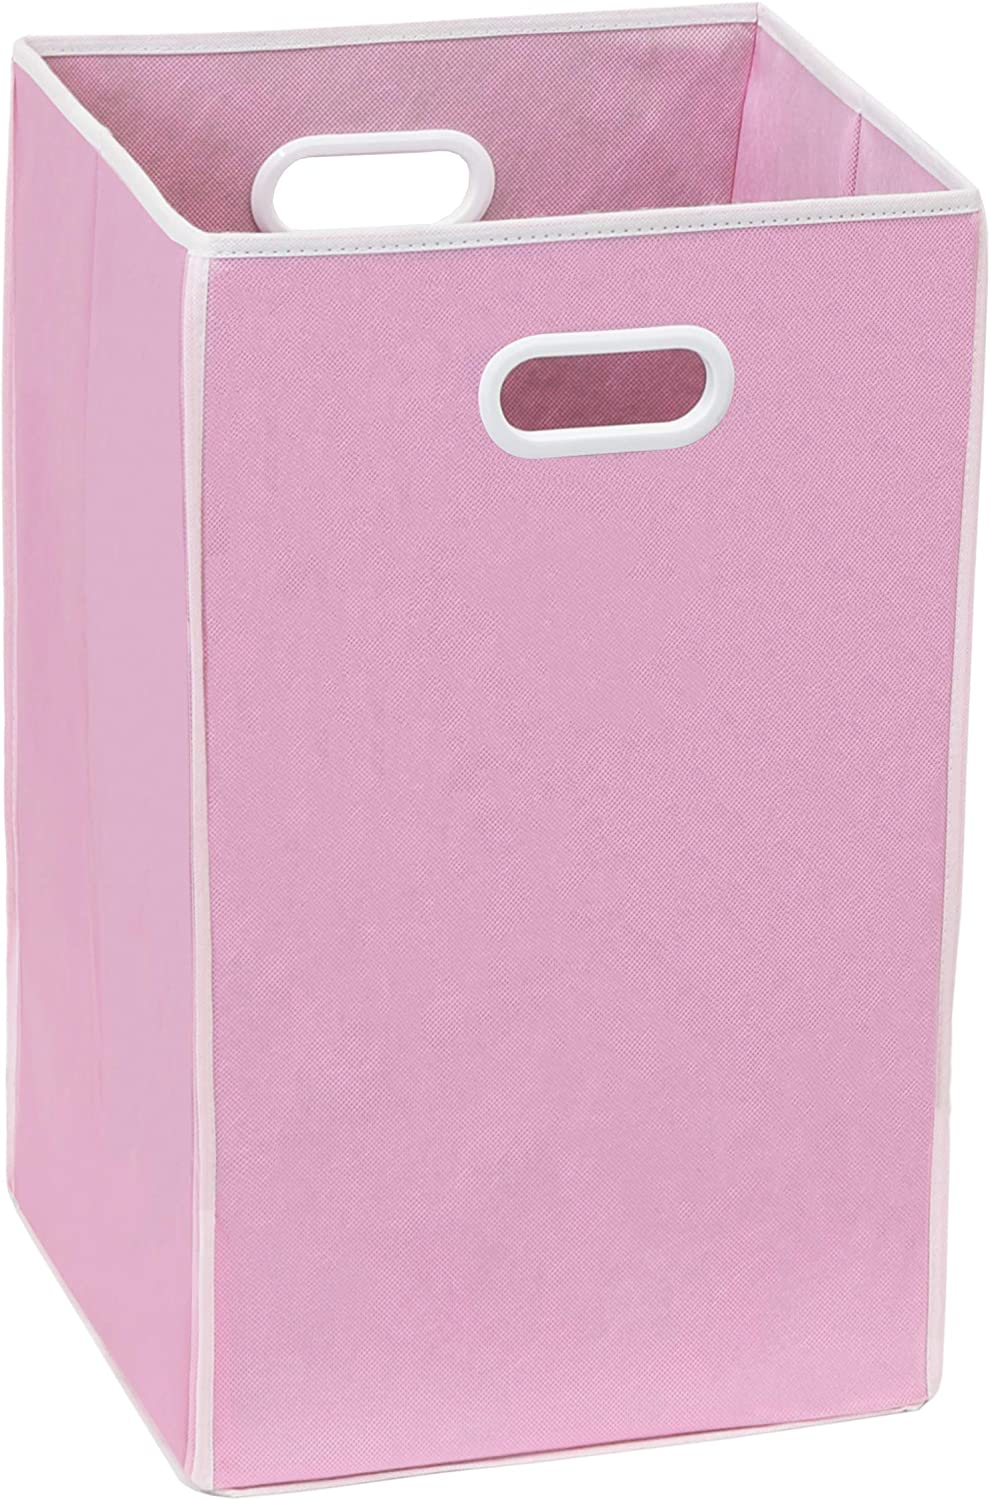 Simple Houseware Foldable Closet Laundry Hamper Basket, Pink